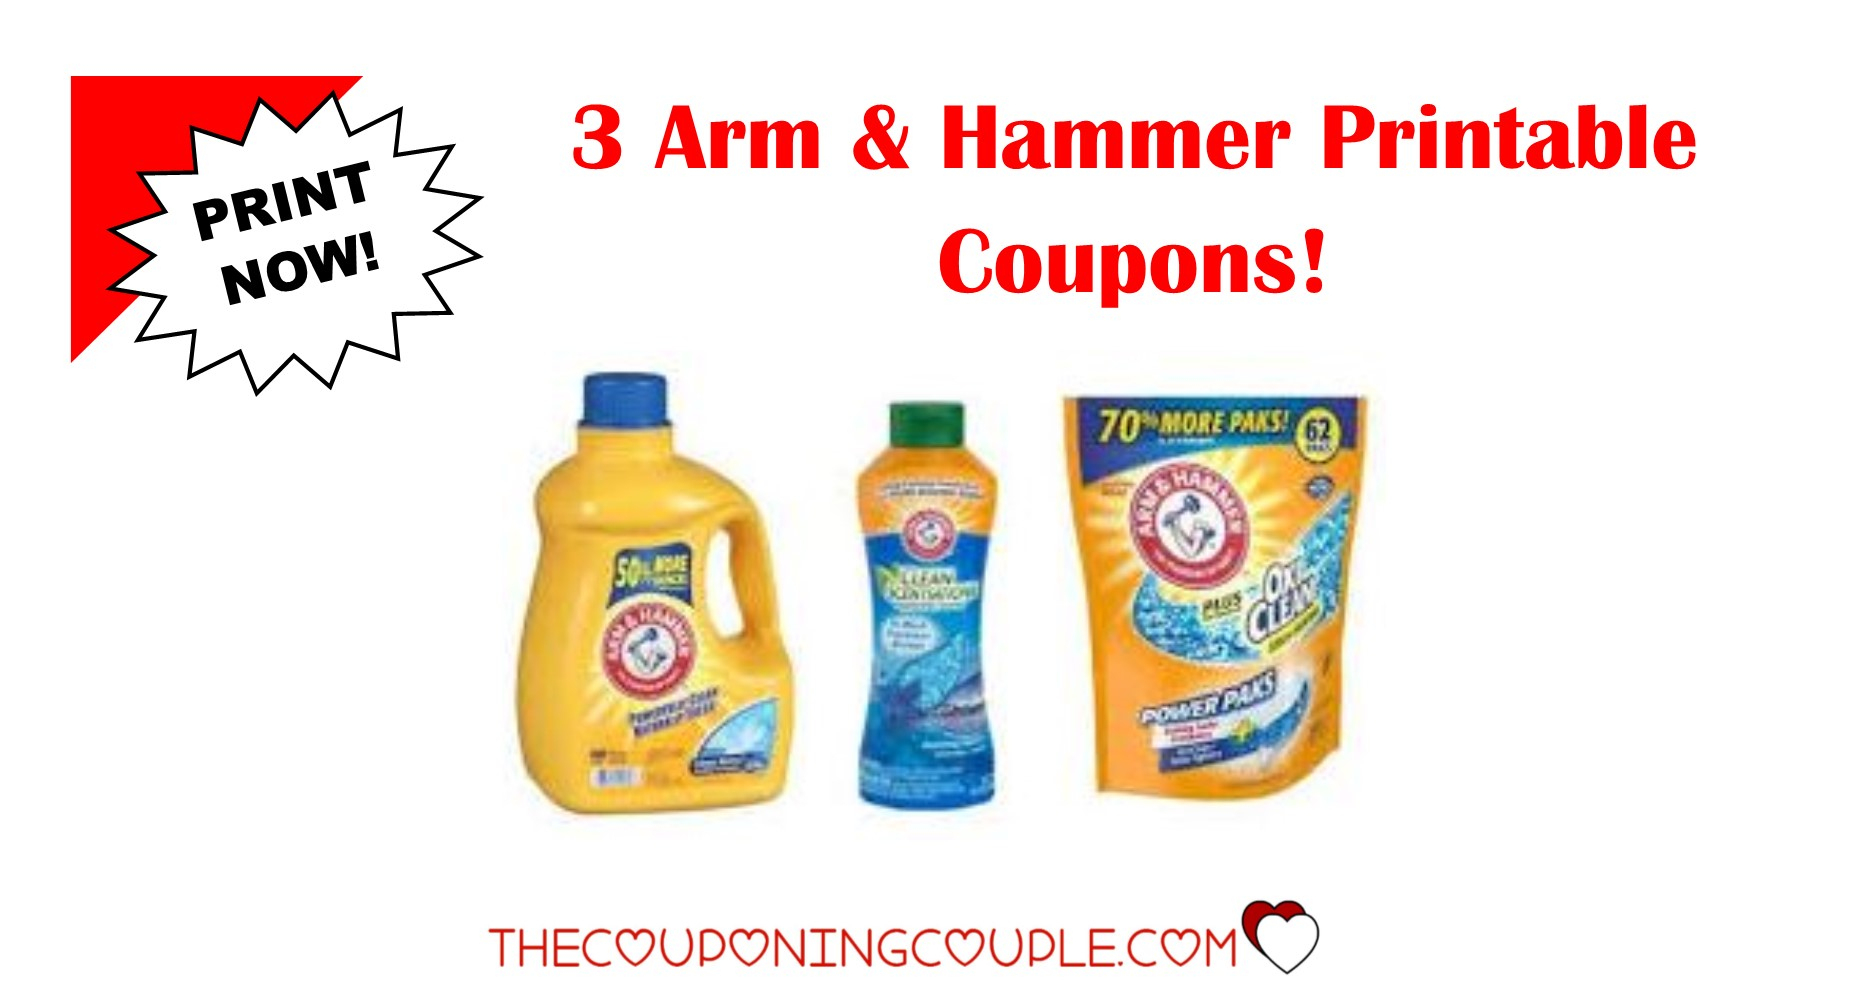 3 Arm & Hammer Printable Coupons ~ Print Now!! Don't Miss Out! - Free Printable Arm And Hammer Coupons